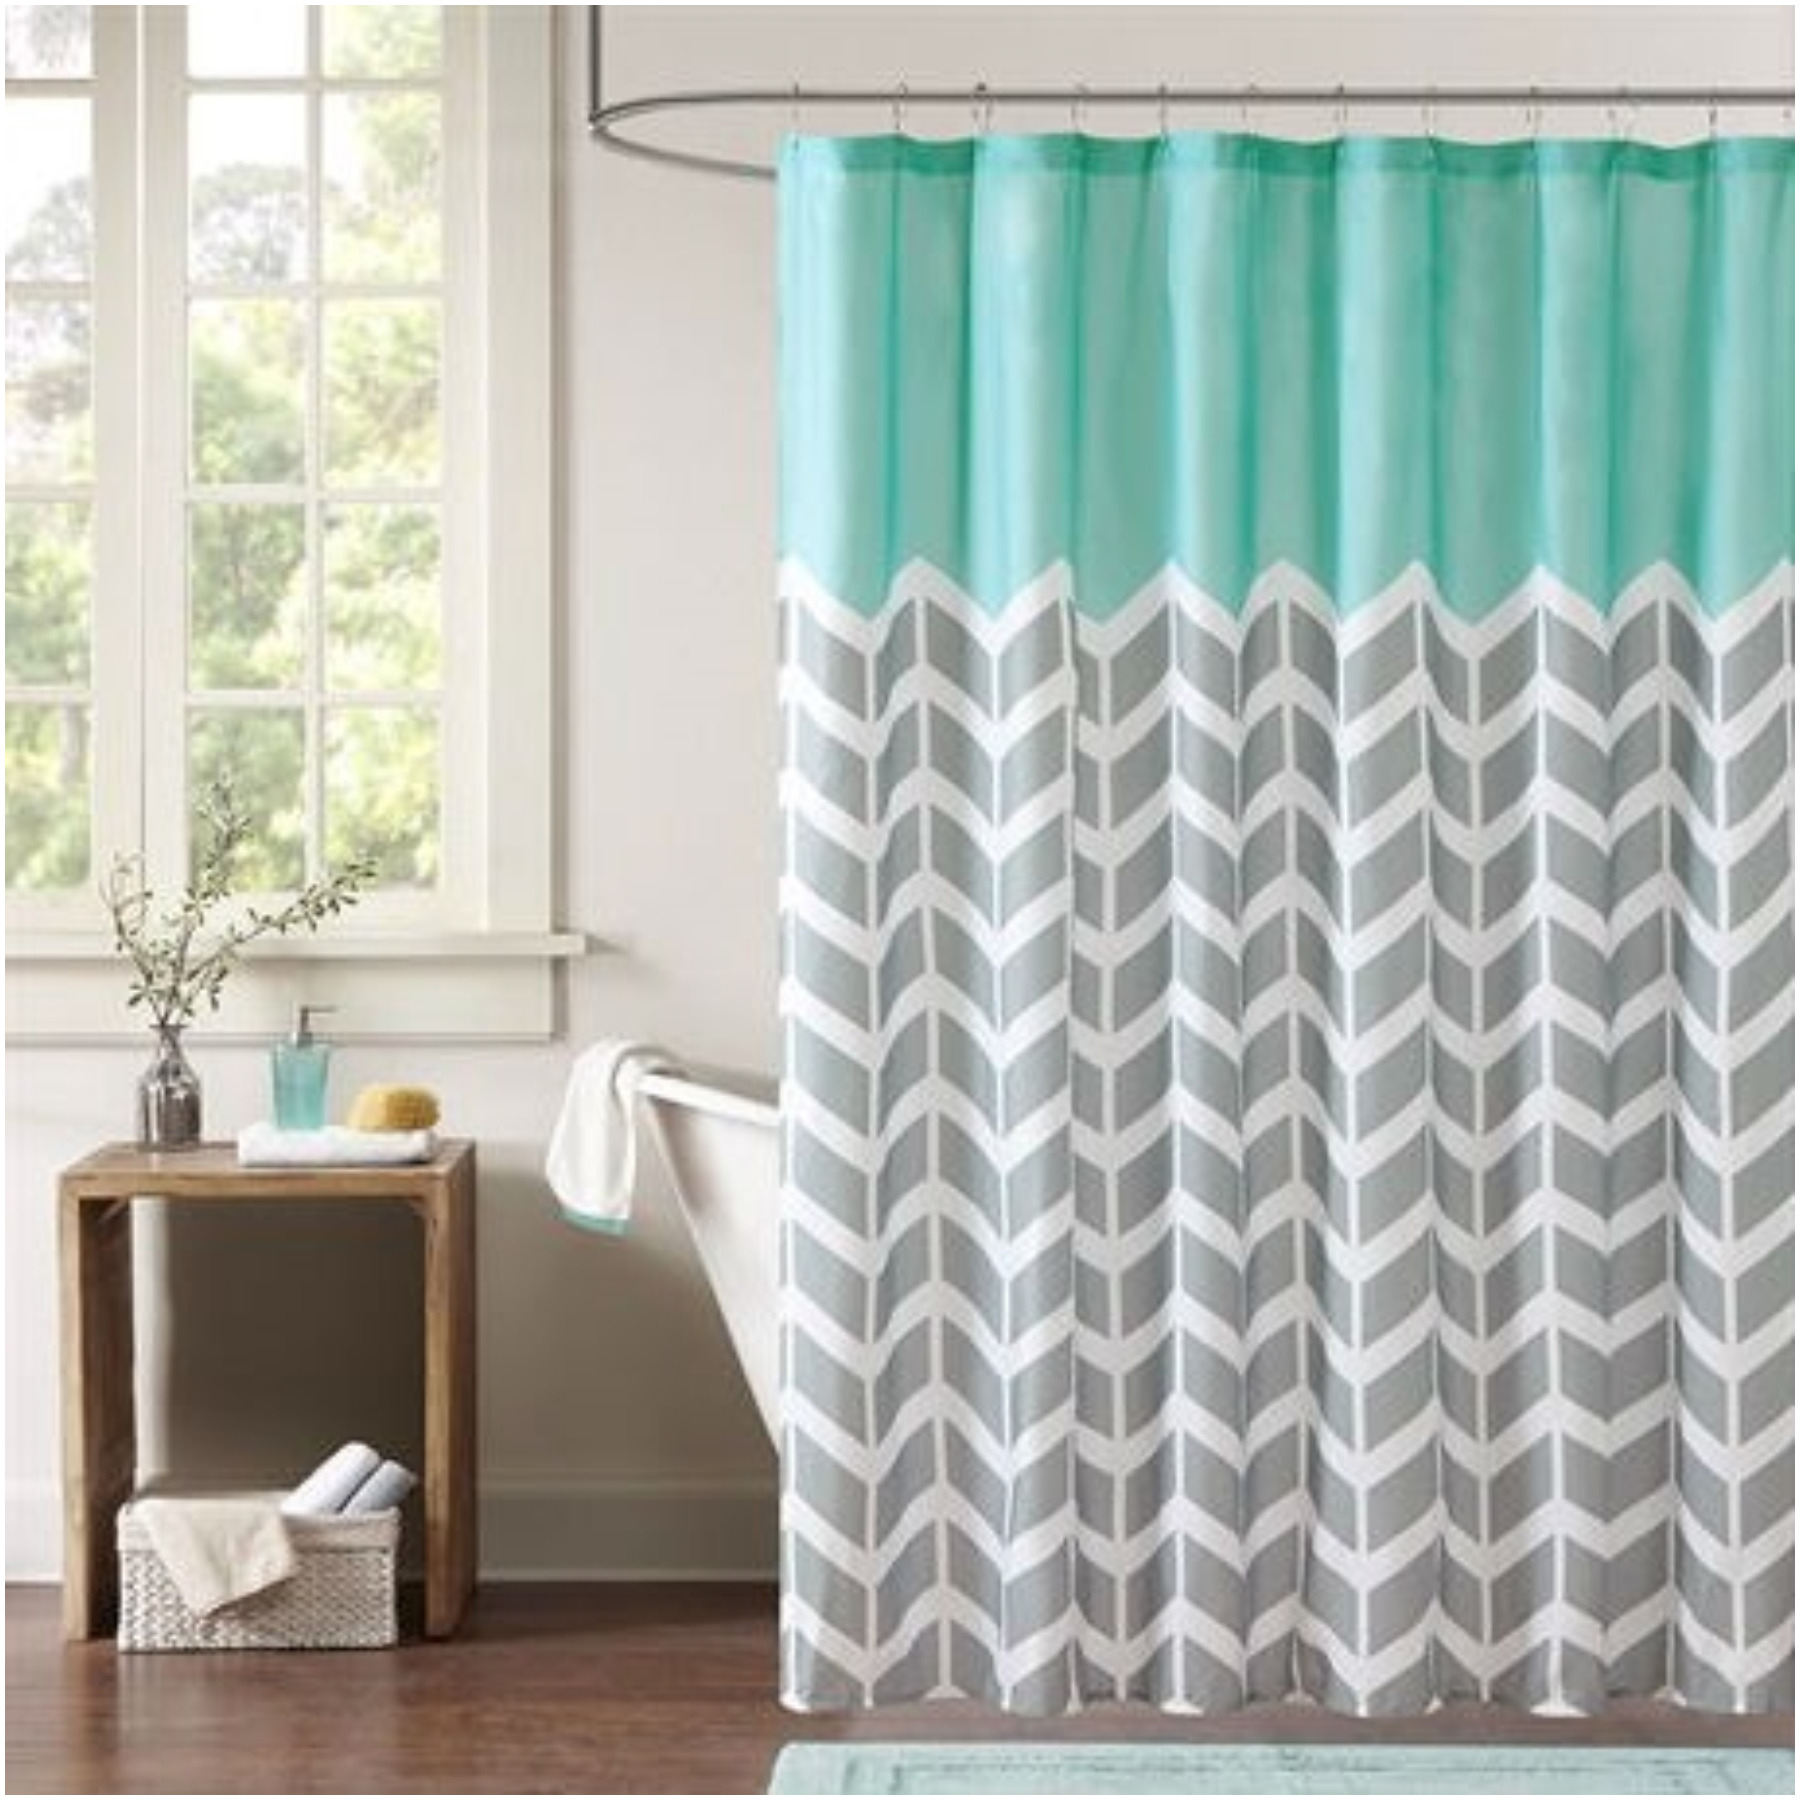 Curtains Blue Gray And White Shower Curtain In Bathroom With with regard to size 1800 X 1800